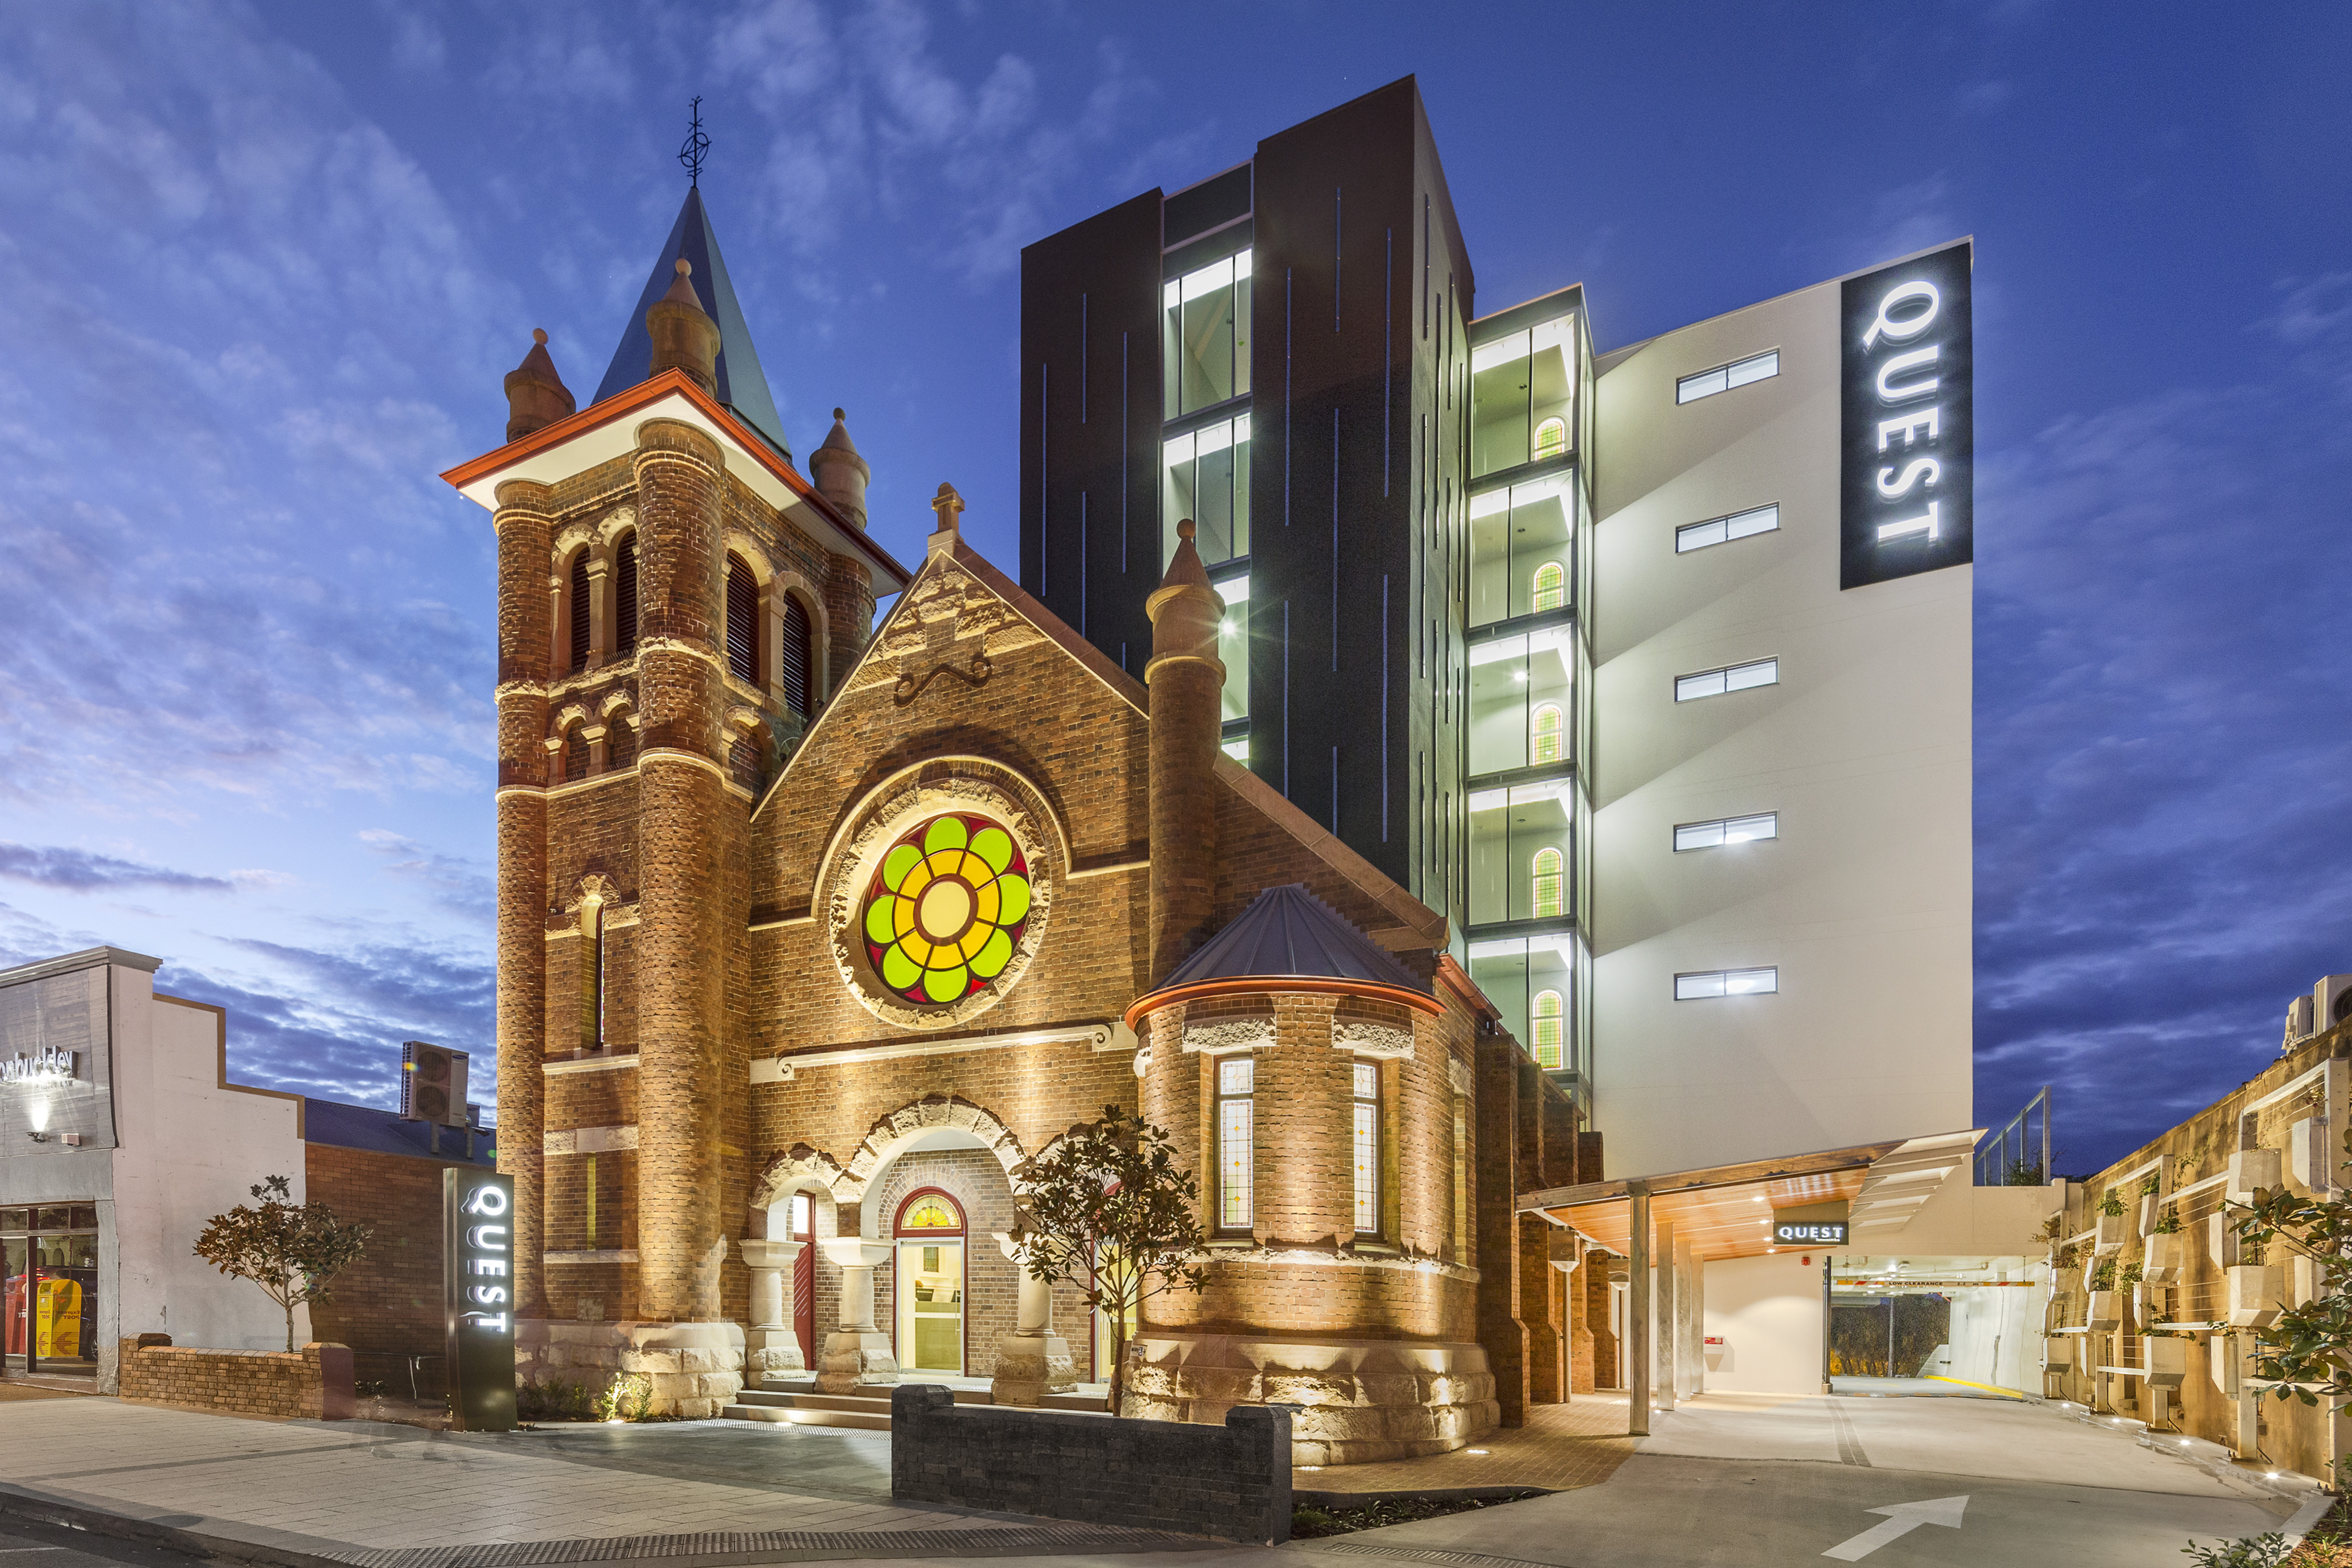 Quest Apartment Hotels in Toowoomba is a former church building recently reopened after $5 million worth of restoration works. Building owner FKG commenced restoration works after the fire in June.